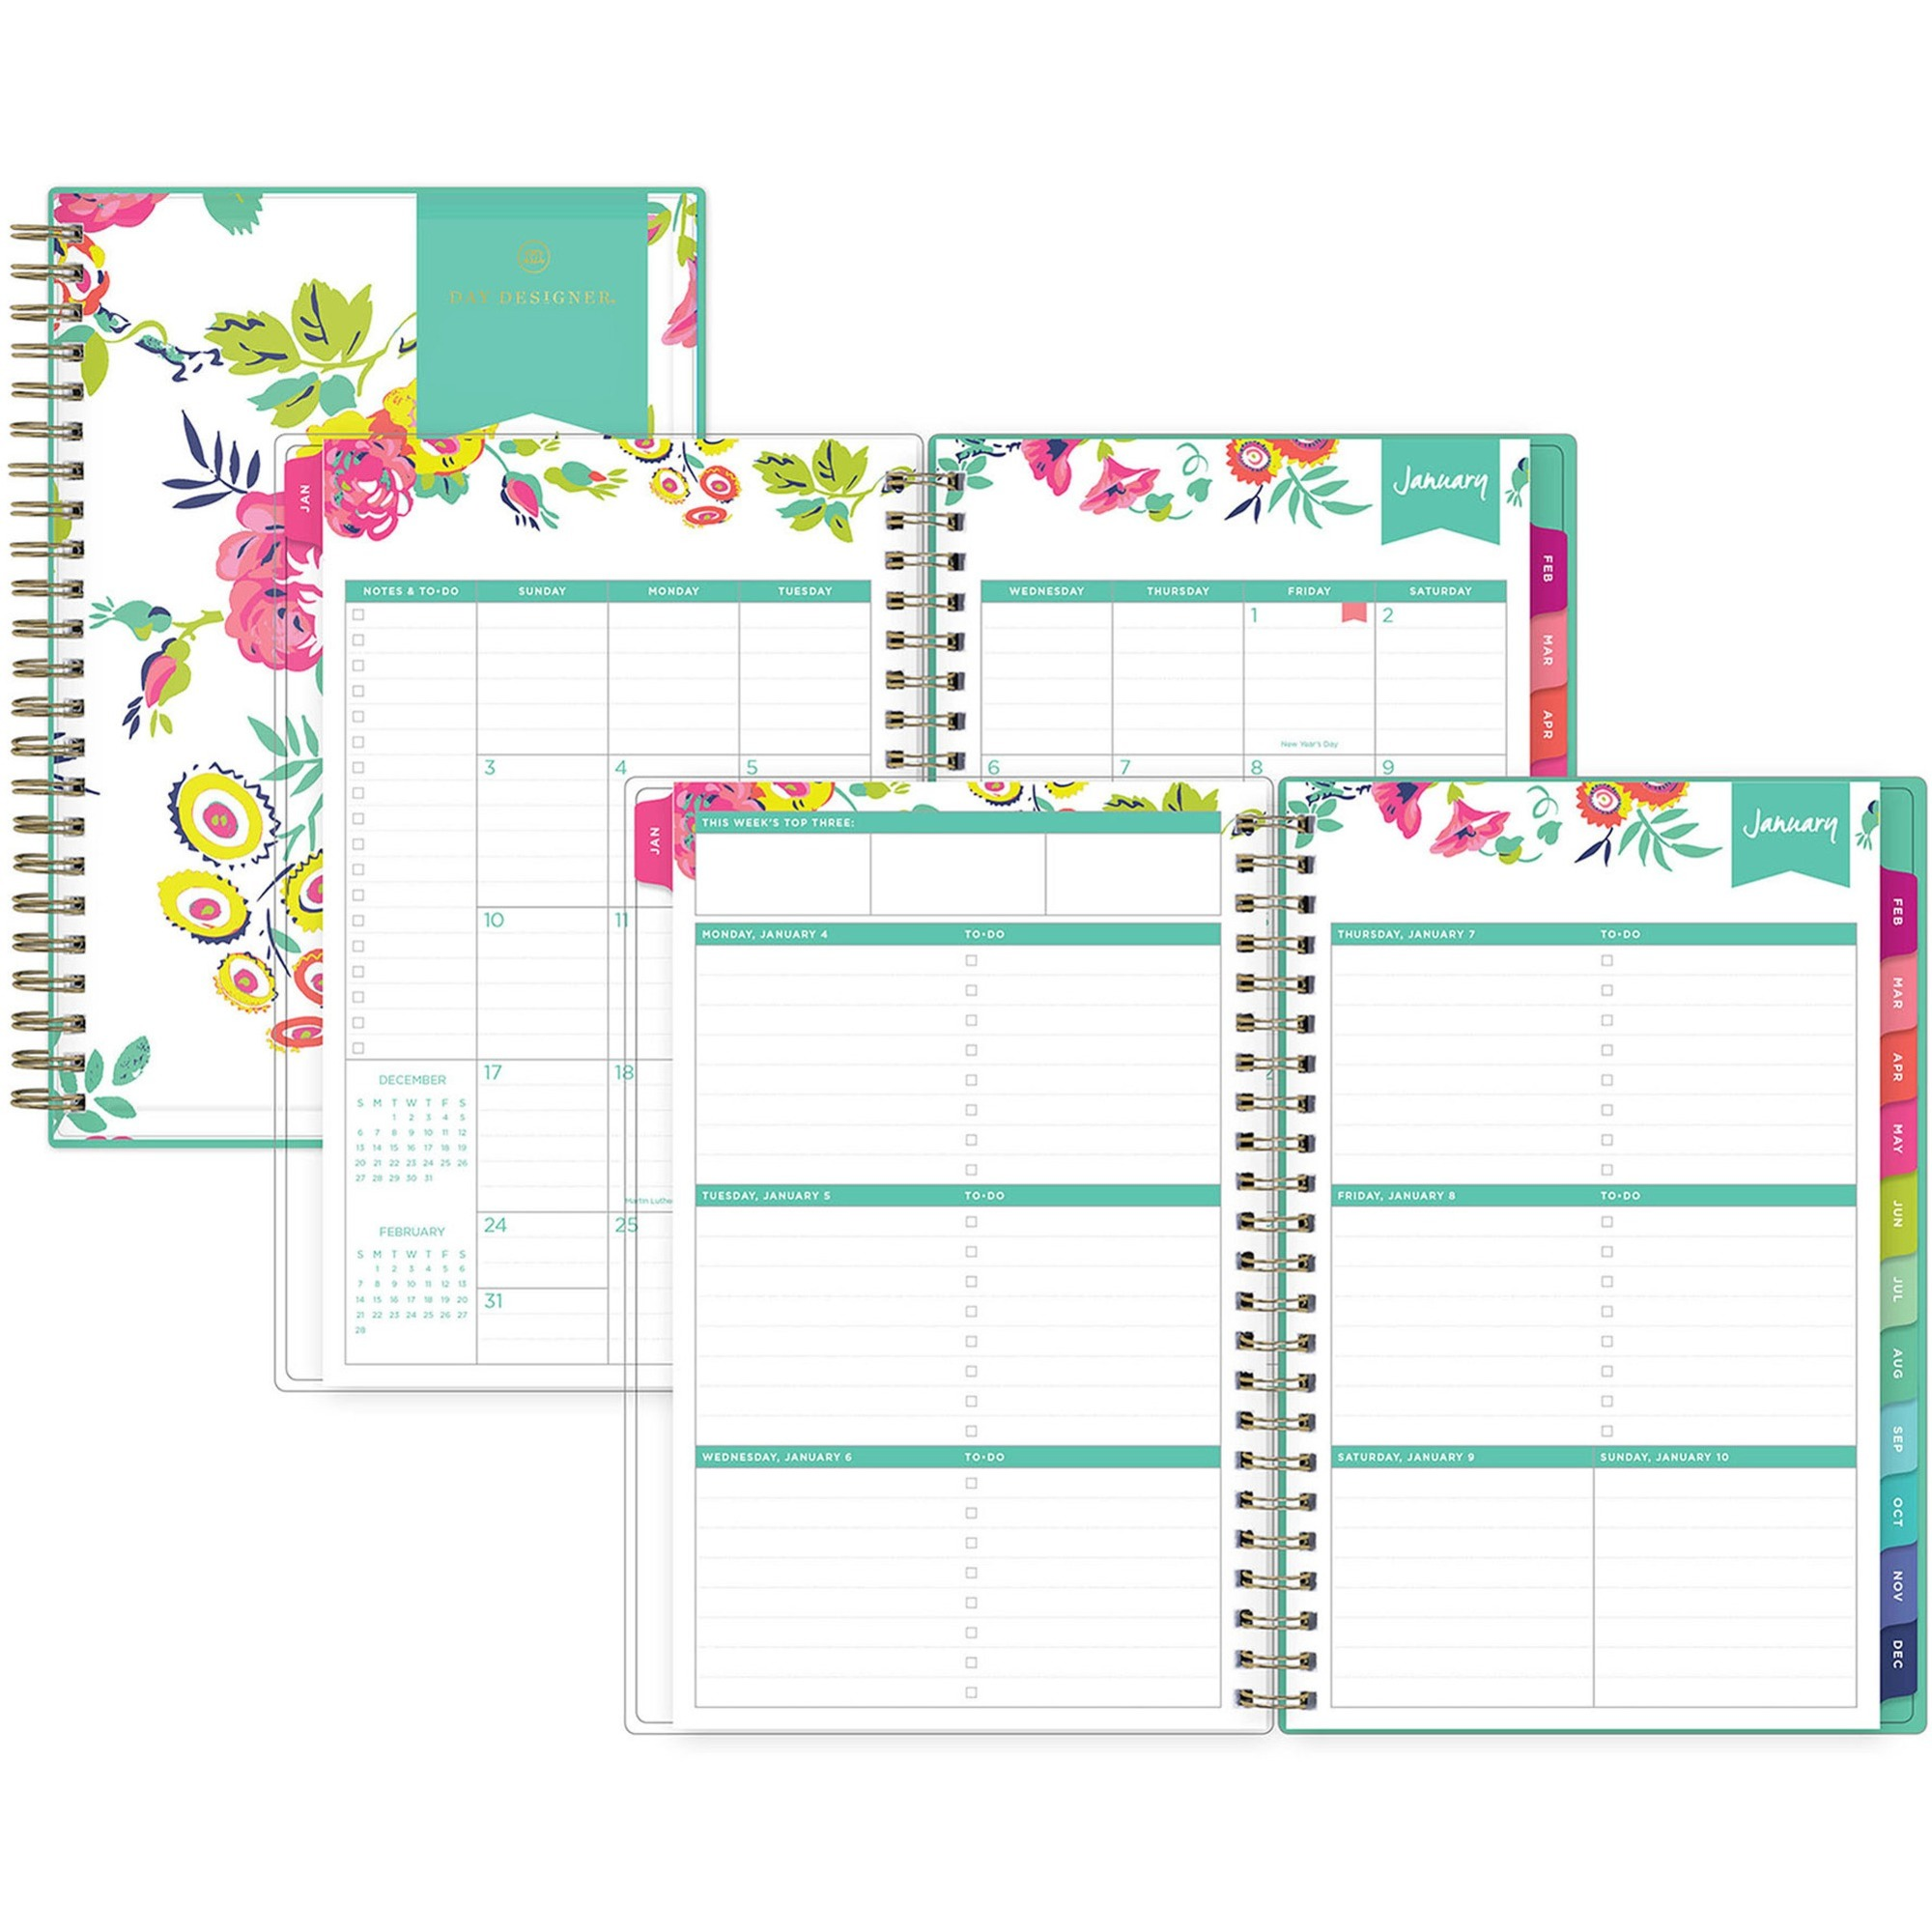 Blue Sky Day Designer Weekly/Monthly Planner - Yes - Weekly, Monthly - 1 Year - January till December - 5